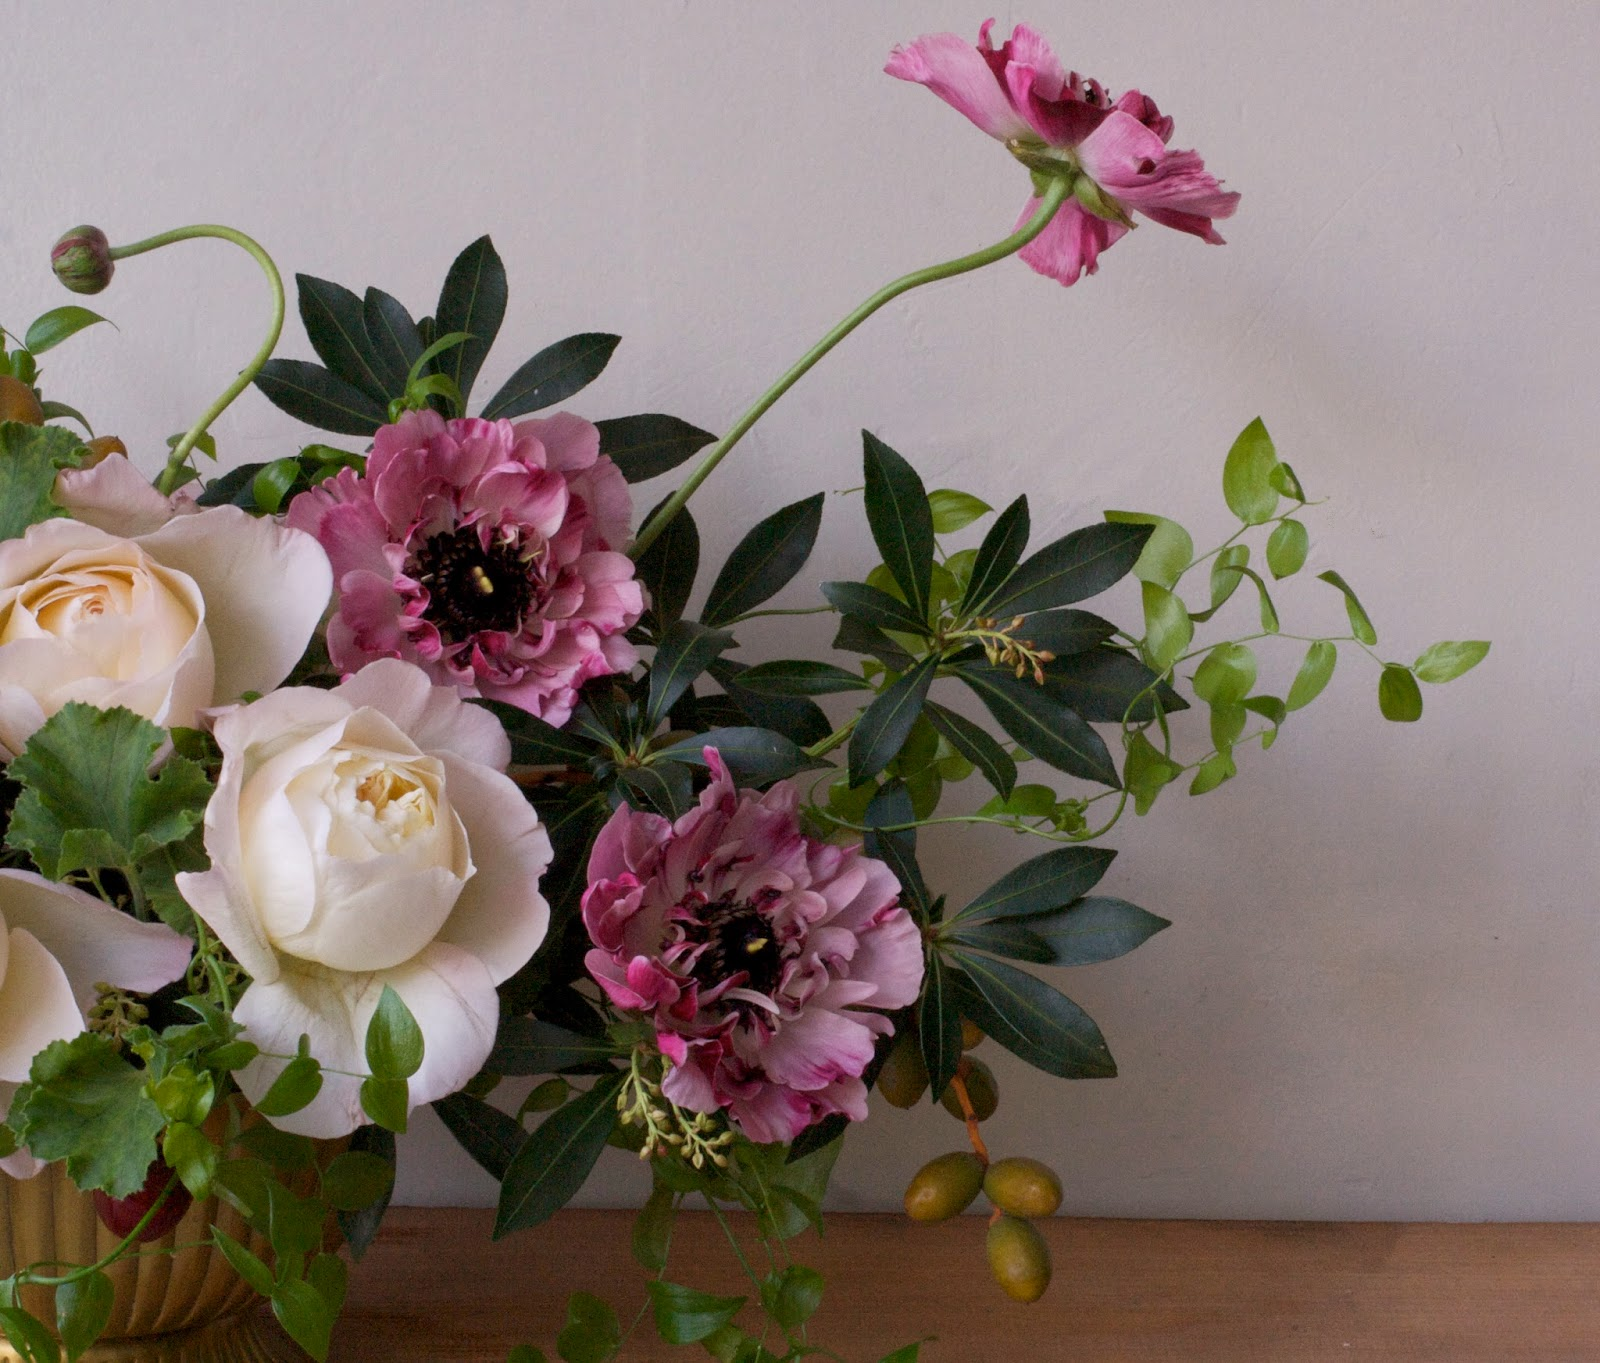 ARIEL DEARIE FLOWERS Reign of the Japanese Ranunculus